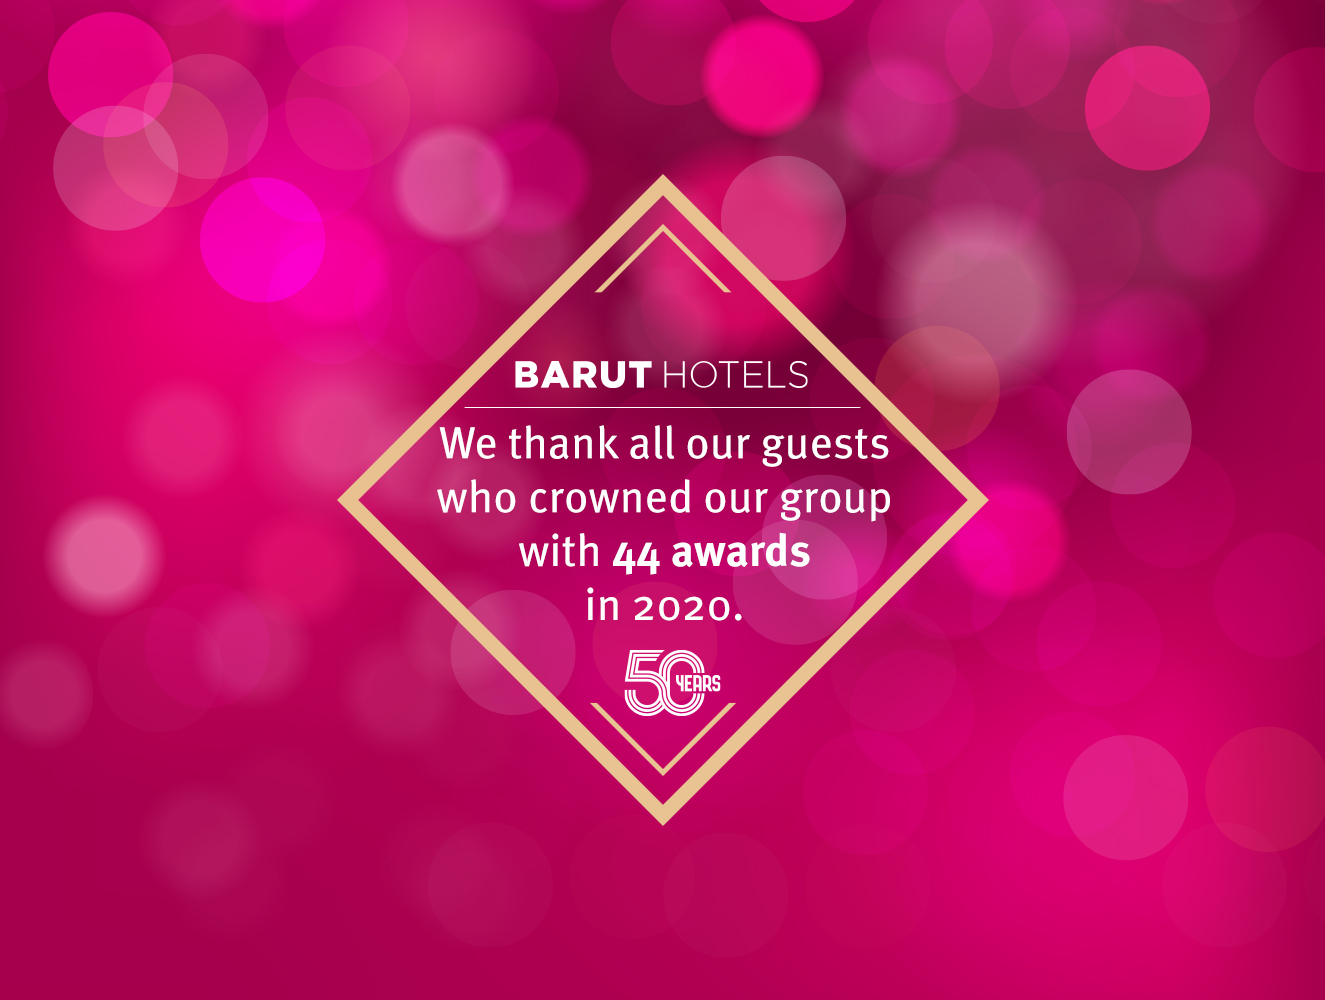 BARUT HOTELS 2020 AWARDS